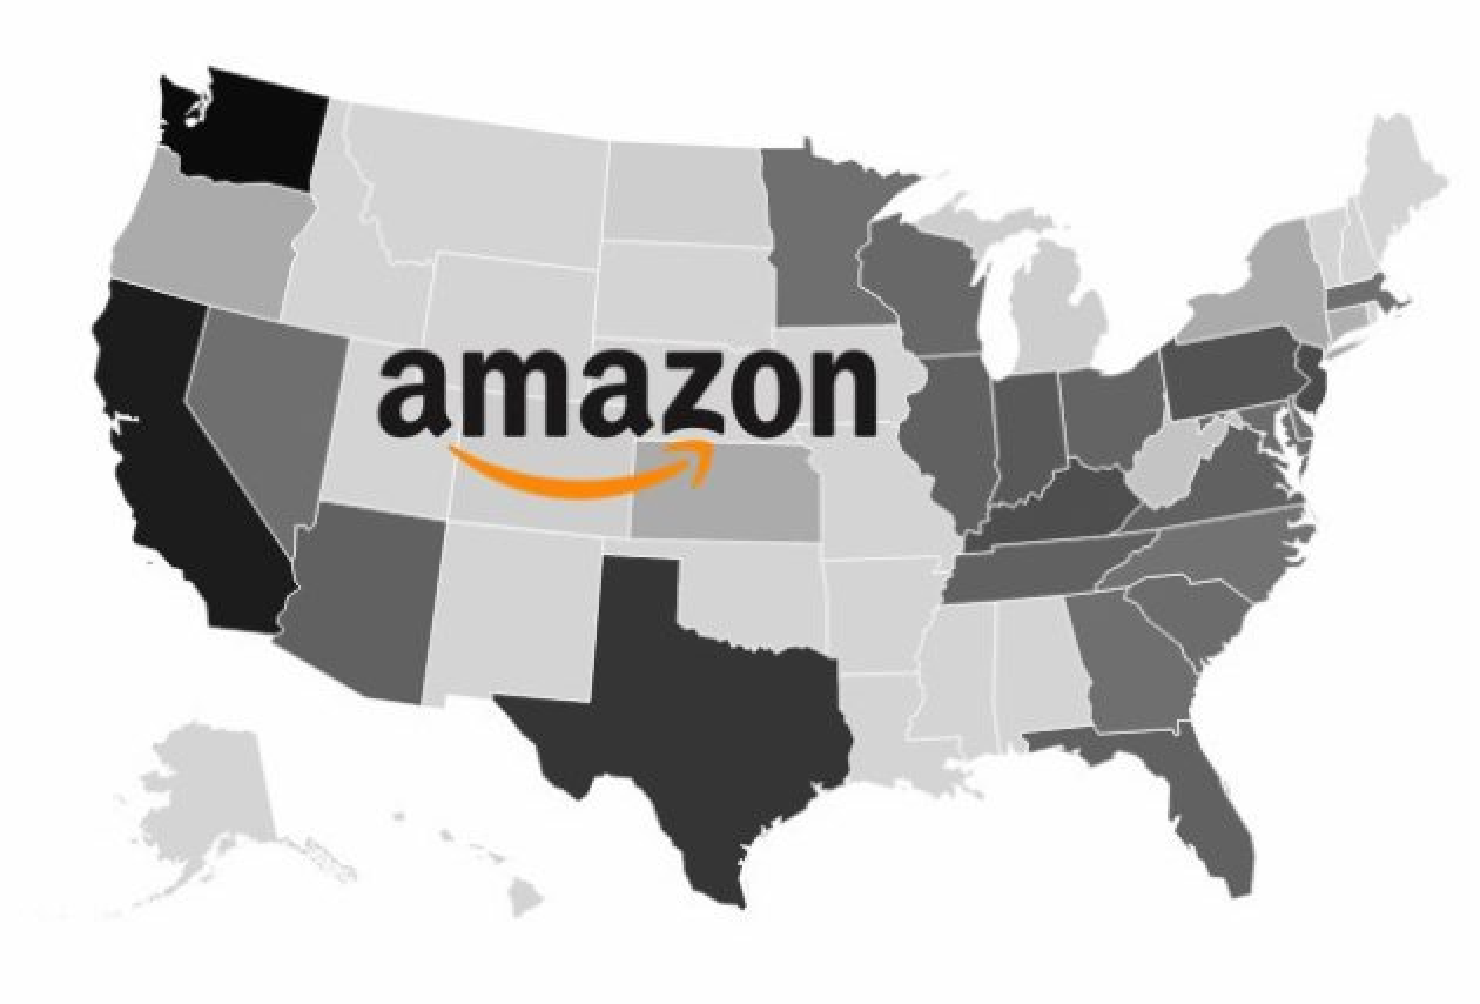 Amazon's Growing Online Marketplace